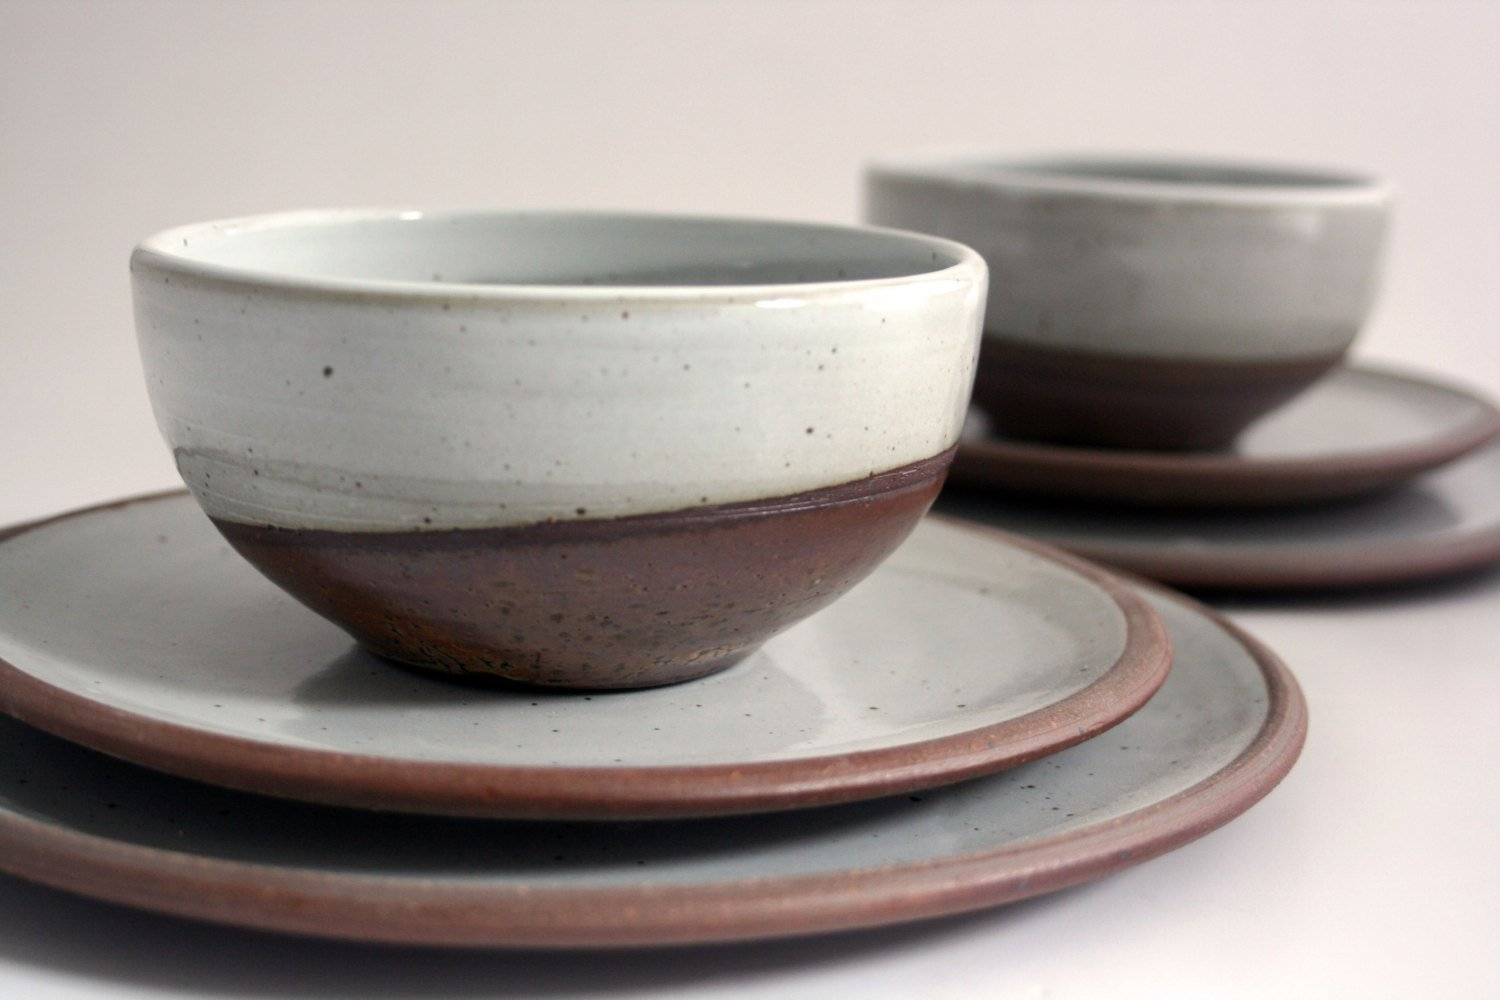 Tableware by Cincinnati-based ceramics artist Bethany Rose Kramer. I'm going to mix a few of her pieces with my everyday plates, which are Heath Ceramics Rim series.  Square Meal by Amanda Dameron